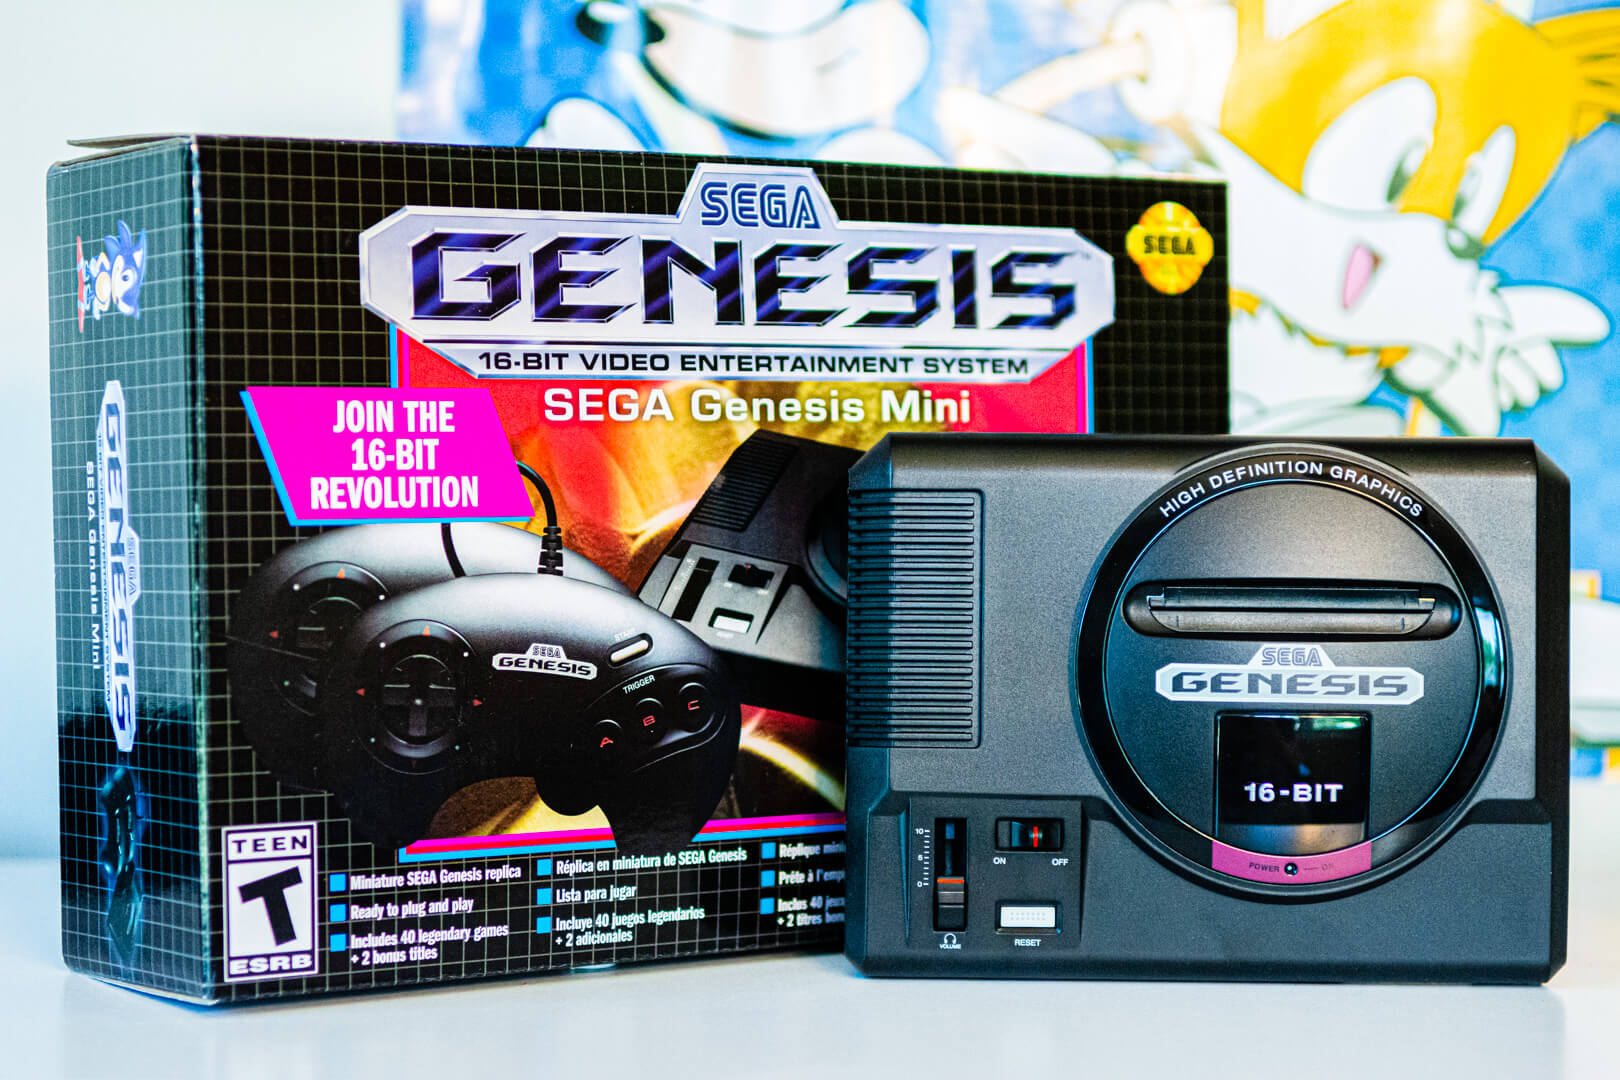 Sega Genesis Mini review round-up: The best miniature console yet?